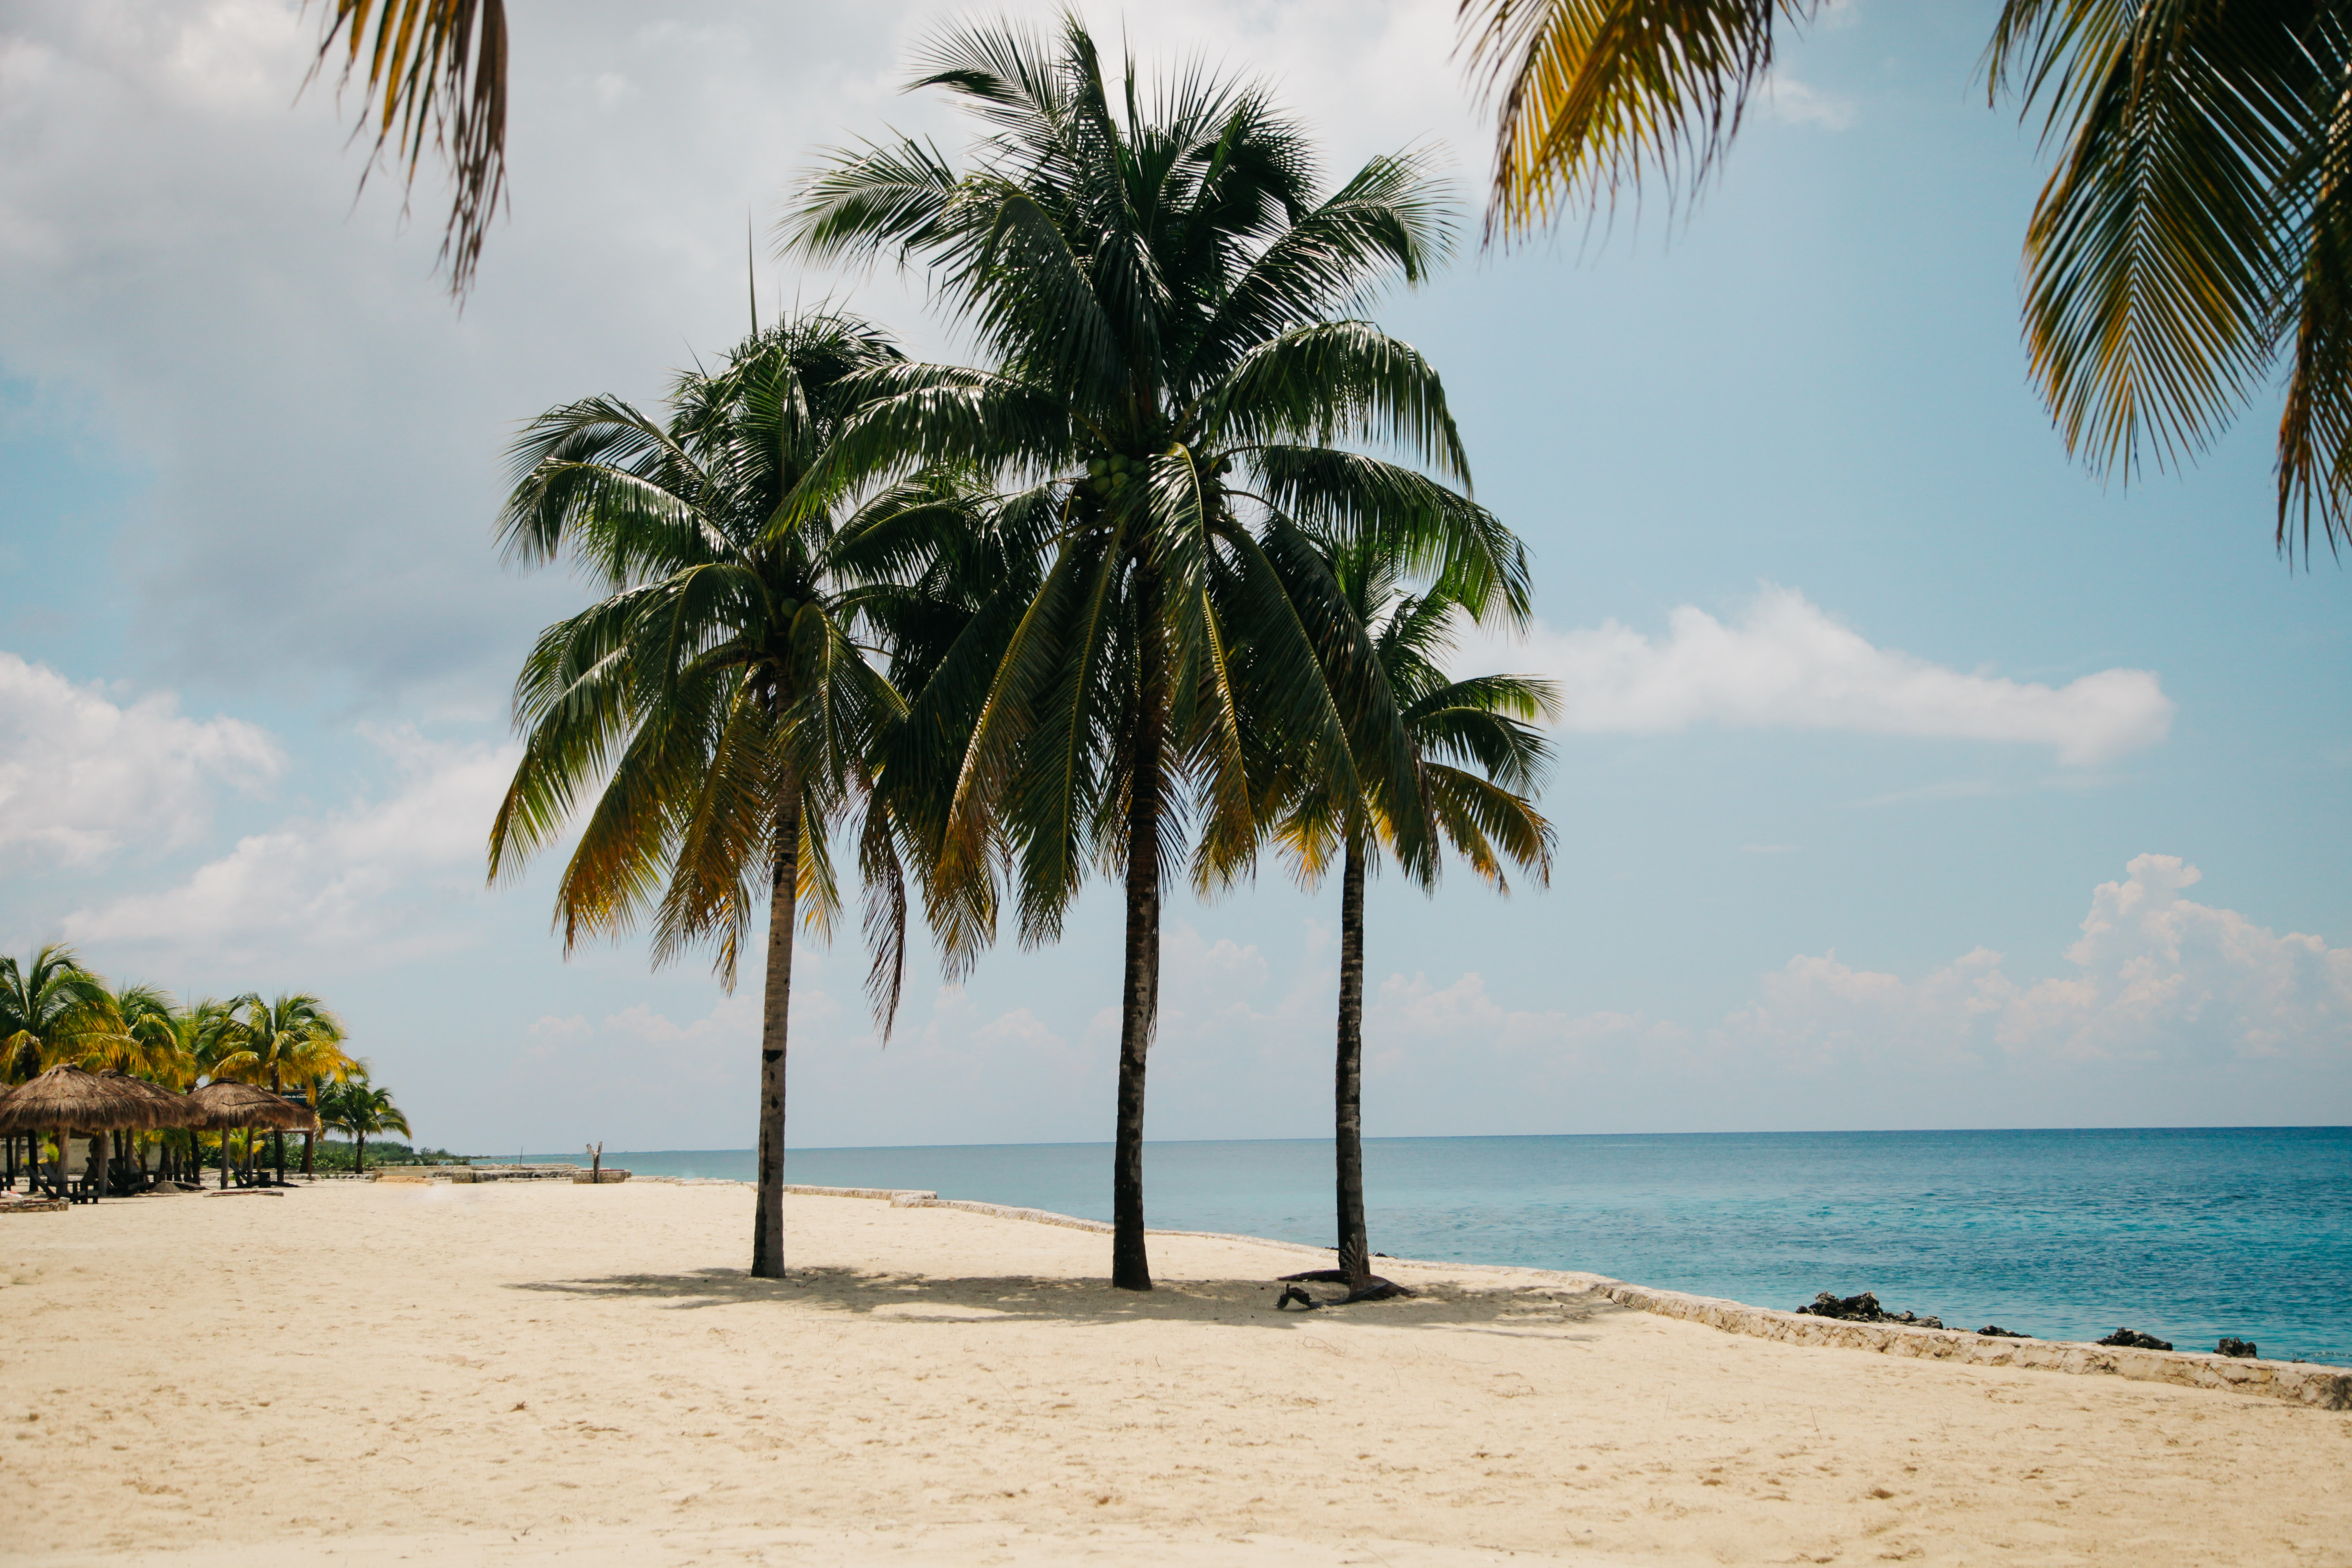 three coconut trees on brown sand near body of water during daytime